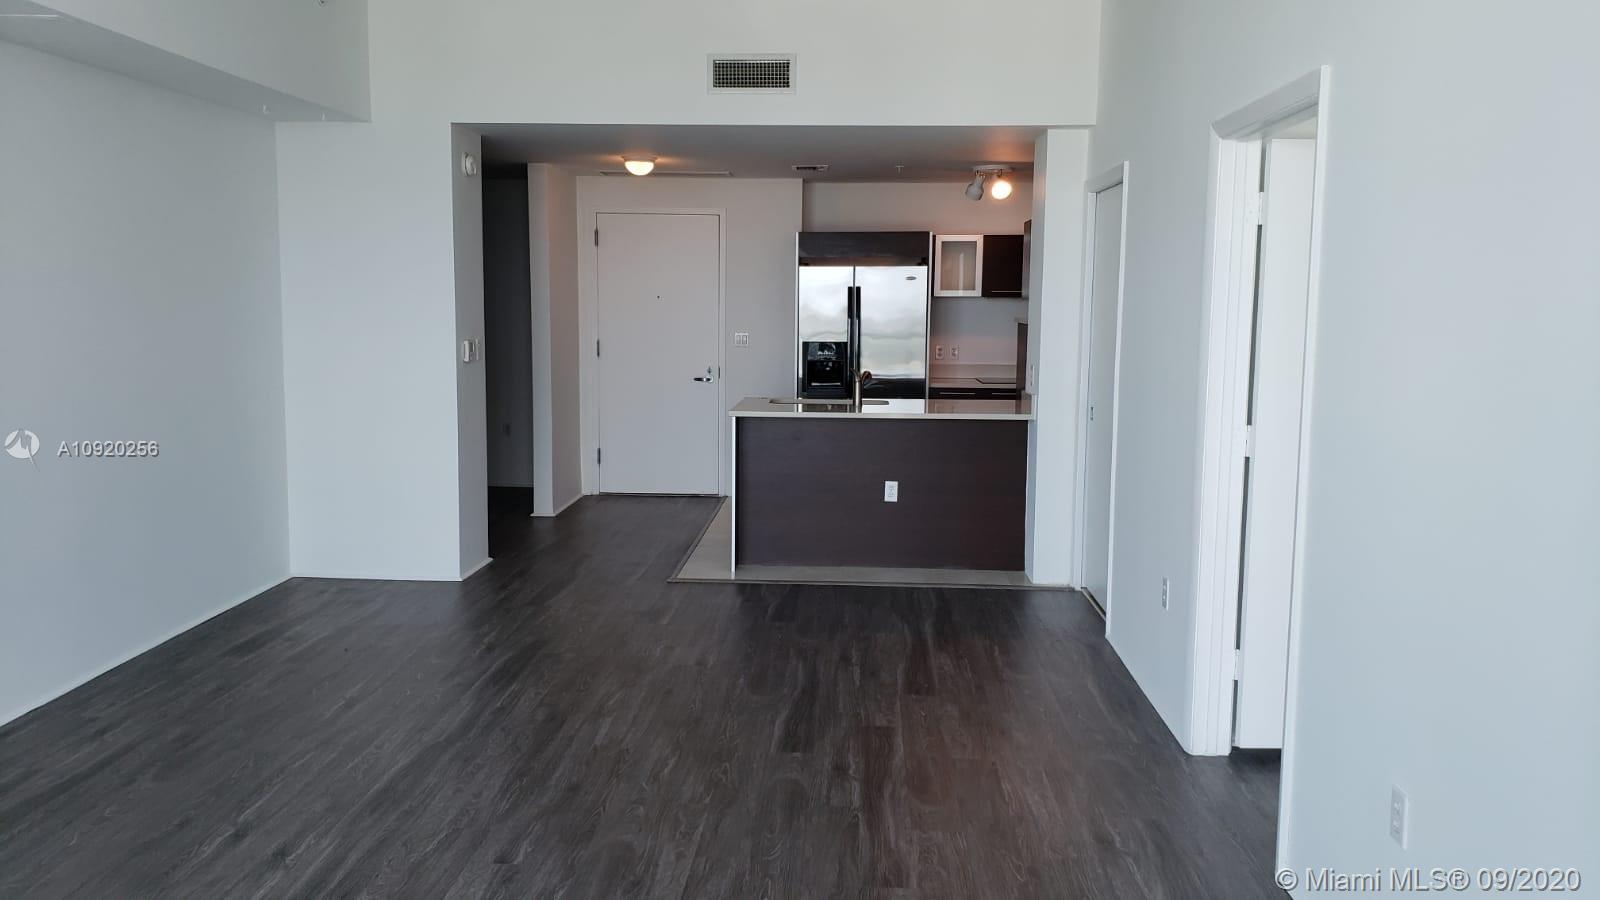 Beautiful apartment, 1 bedroom, 1.5 Bathroom *** Spacious Den with closet that you can use as a second bedroom or as a studio *** New washer / dryer *** Laminate floor *** Beautiful city view and partial bay view . Very close to Downtown, Miami Beach, Wynwood, Art District, Midtown, and Airport. The park across the street offers tennis courts, basketball courts, volleyball.